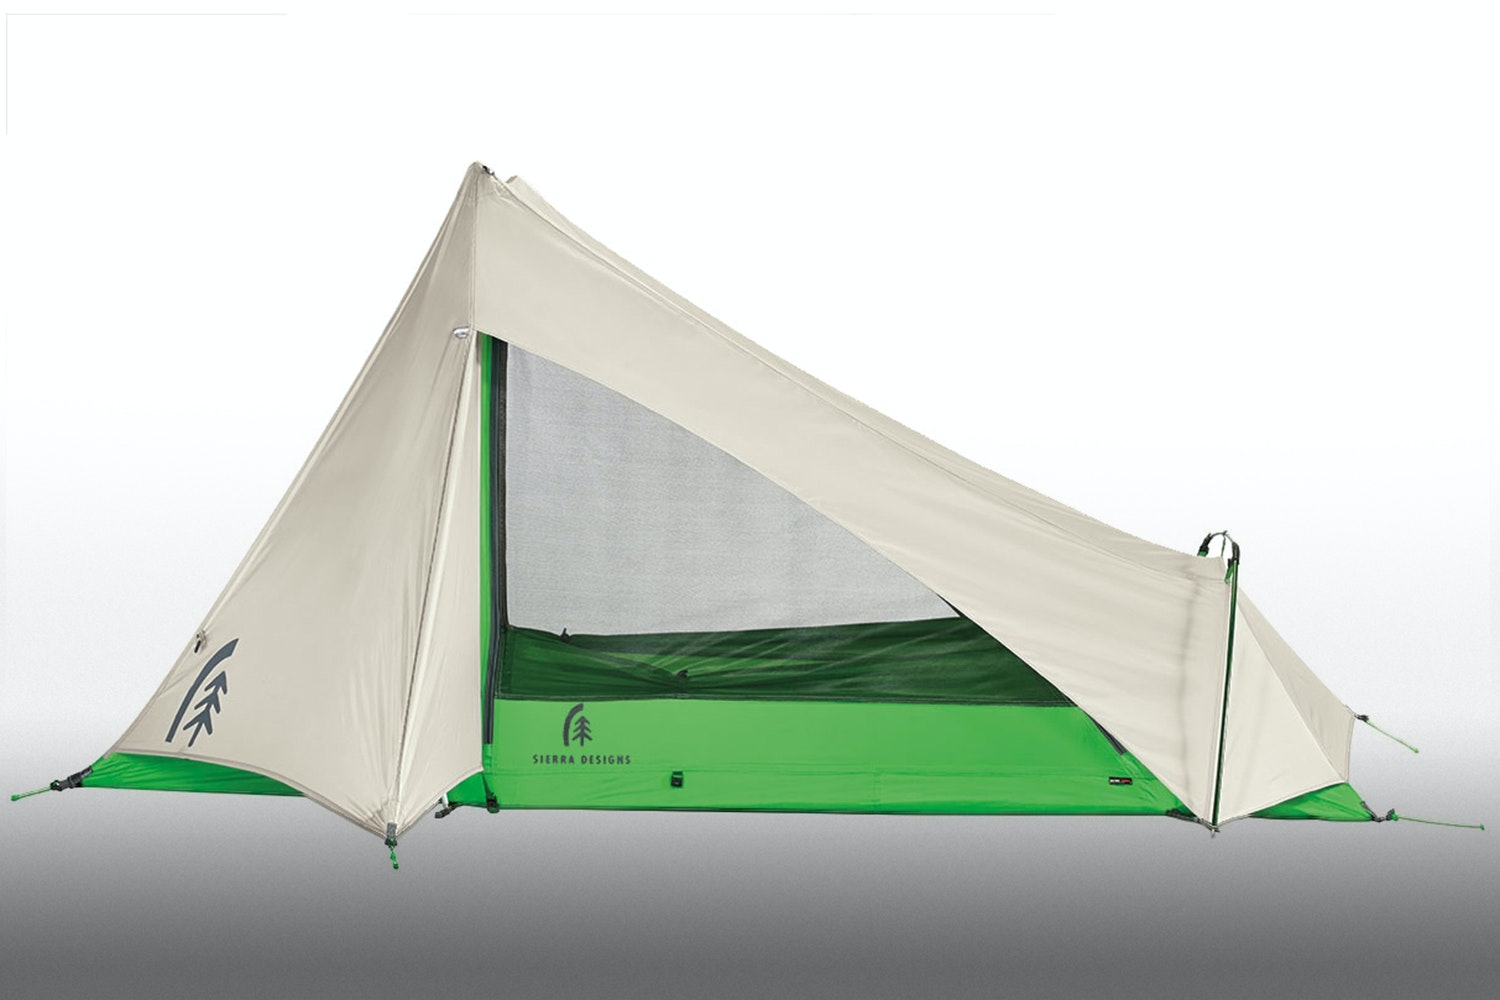 Sierra Designs Flashlight Tents  sc 1 st  Massdrop & Sierra Designs Flashlight Tents | Price u0026 Reviews | Massdrop